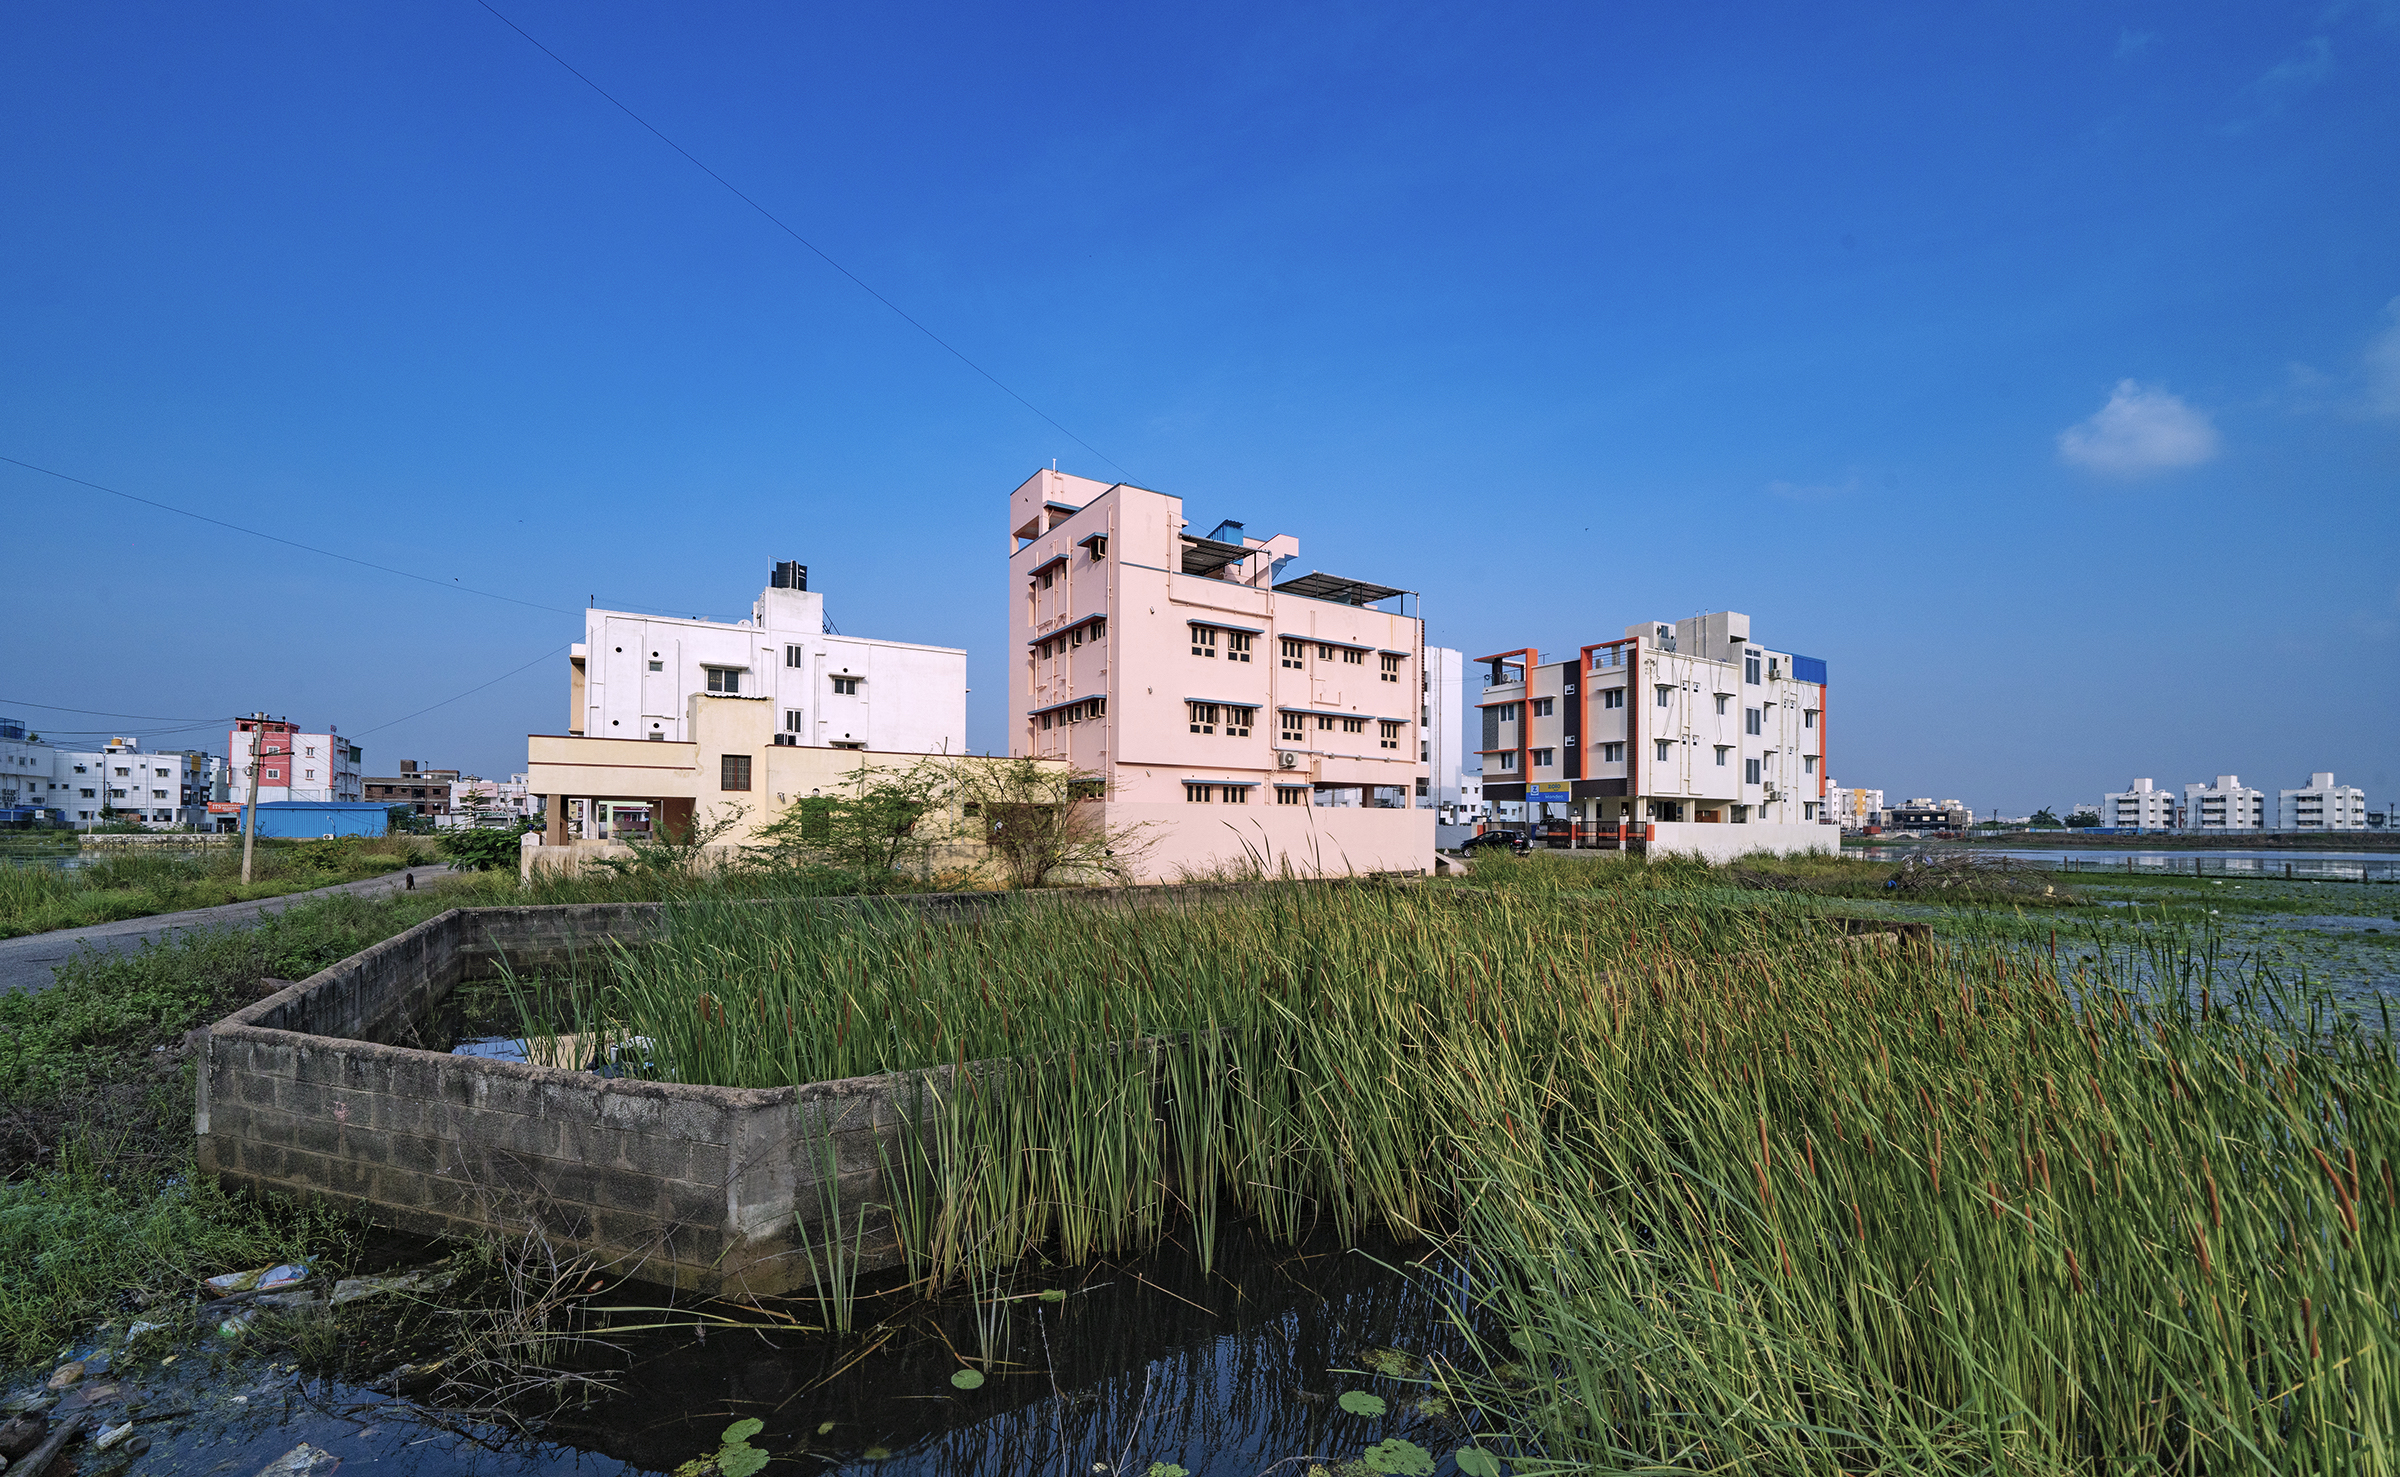 Development of malls, restaurants, hotels, hospitals, and information technology firms has reduced Pallikaranai Marsh to one-tenth of its original size.